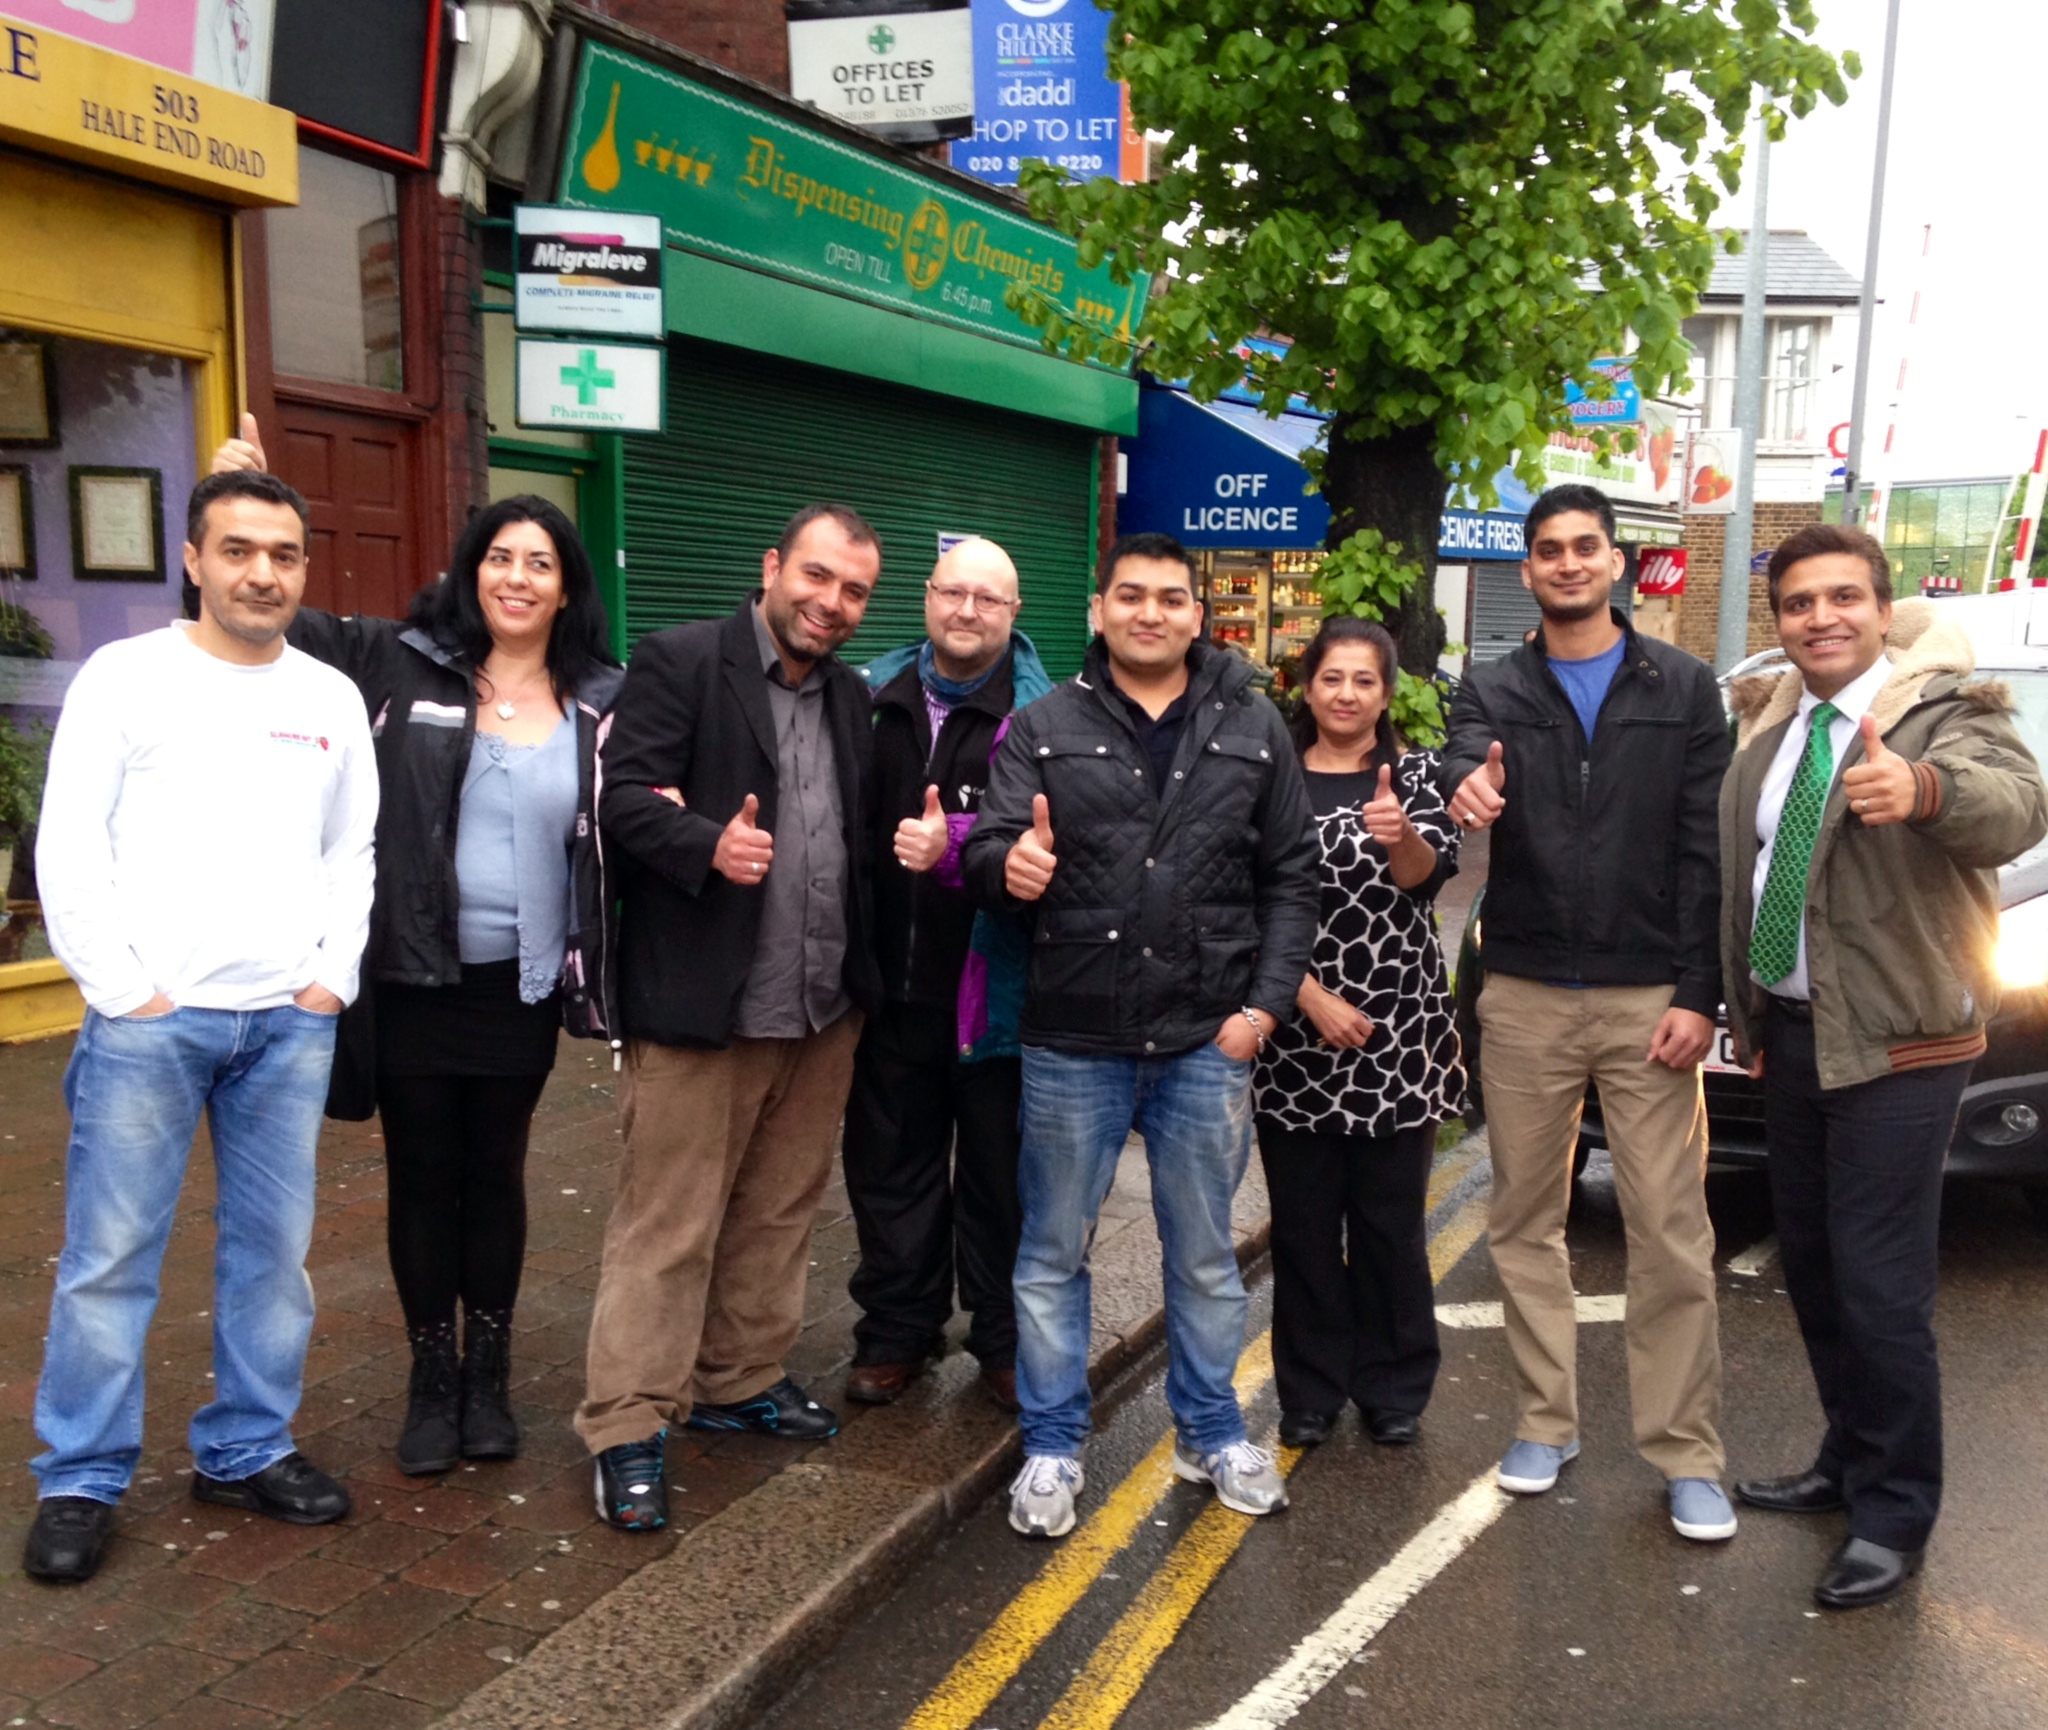 Traders with councillor's Sheree Rackham, Paul Braham and Darshan Sunger at where the new bays will be in Hale End Road